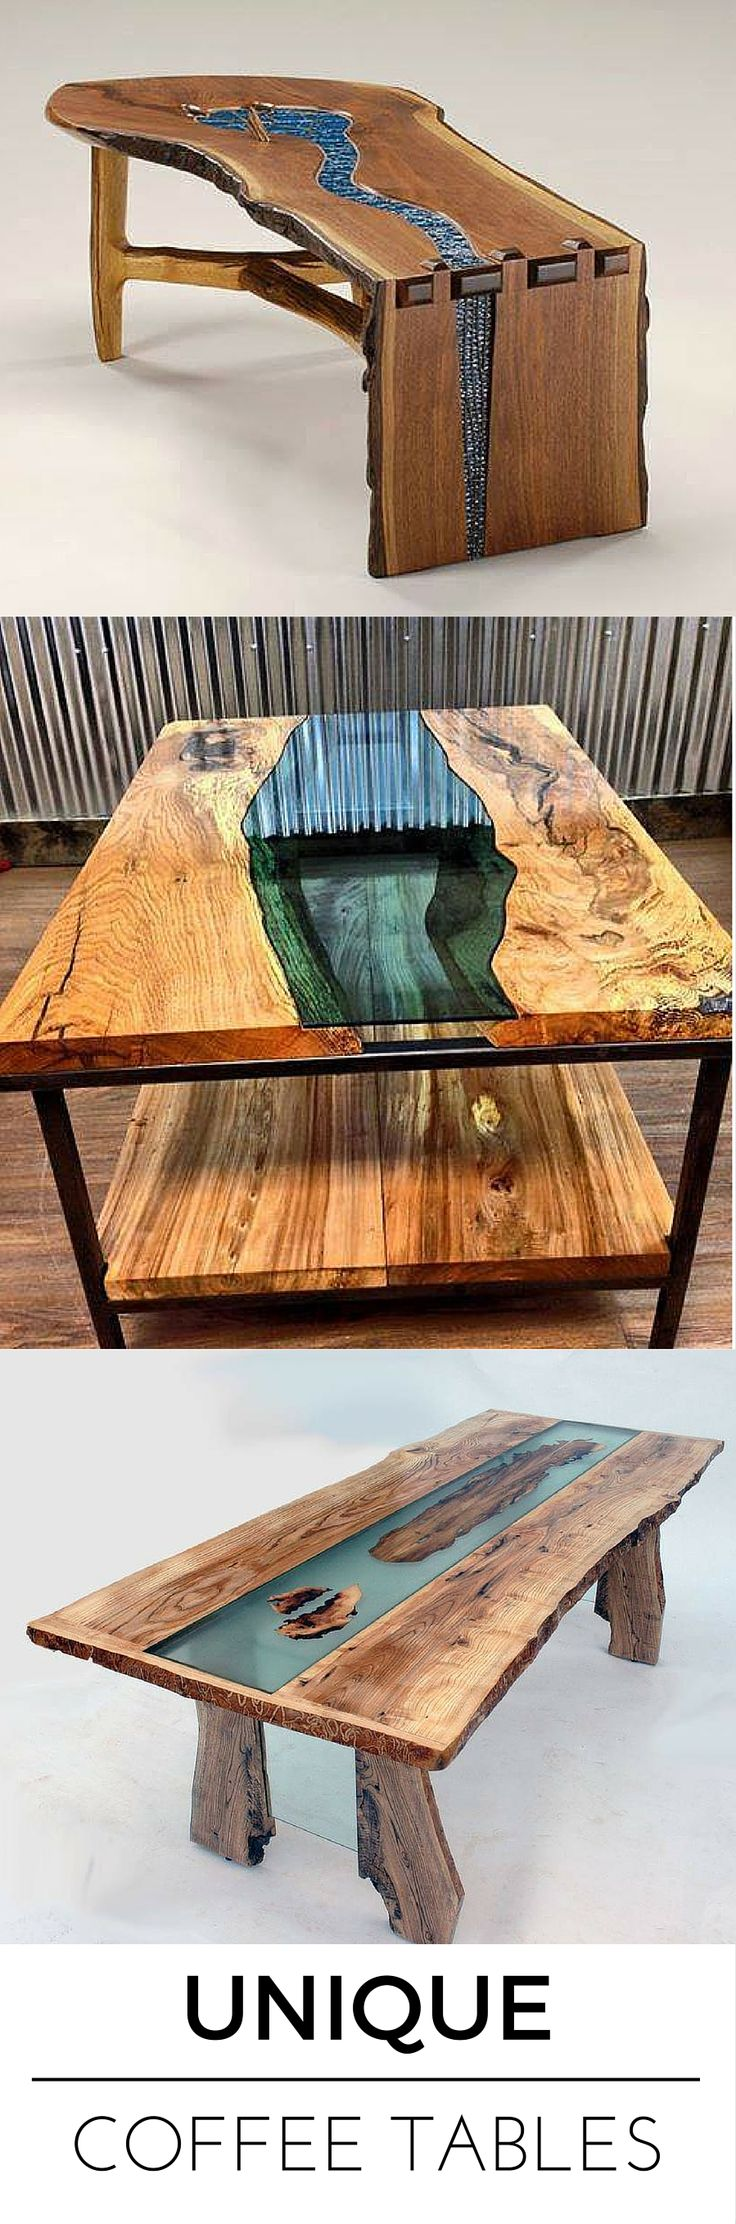 Best 25+ Unique coffee table ideas on Pinterest | Window coffee ...